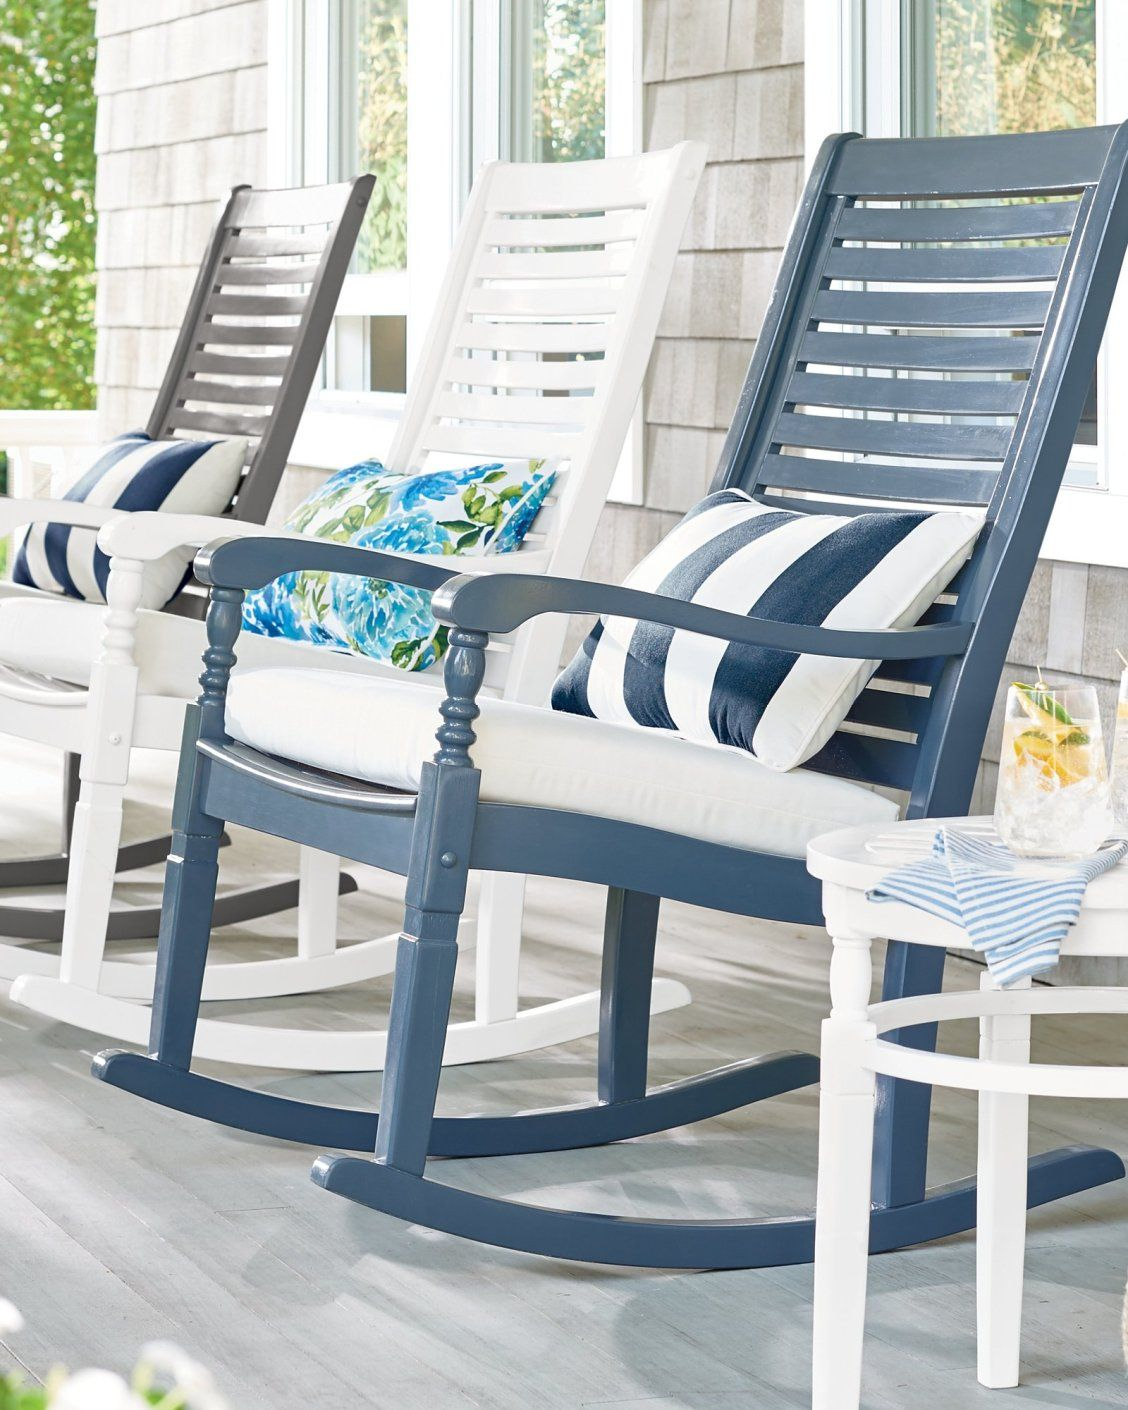 Nantucket Rocking Chair In 2019 Rocking Chair Outdoor